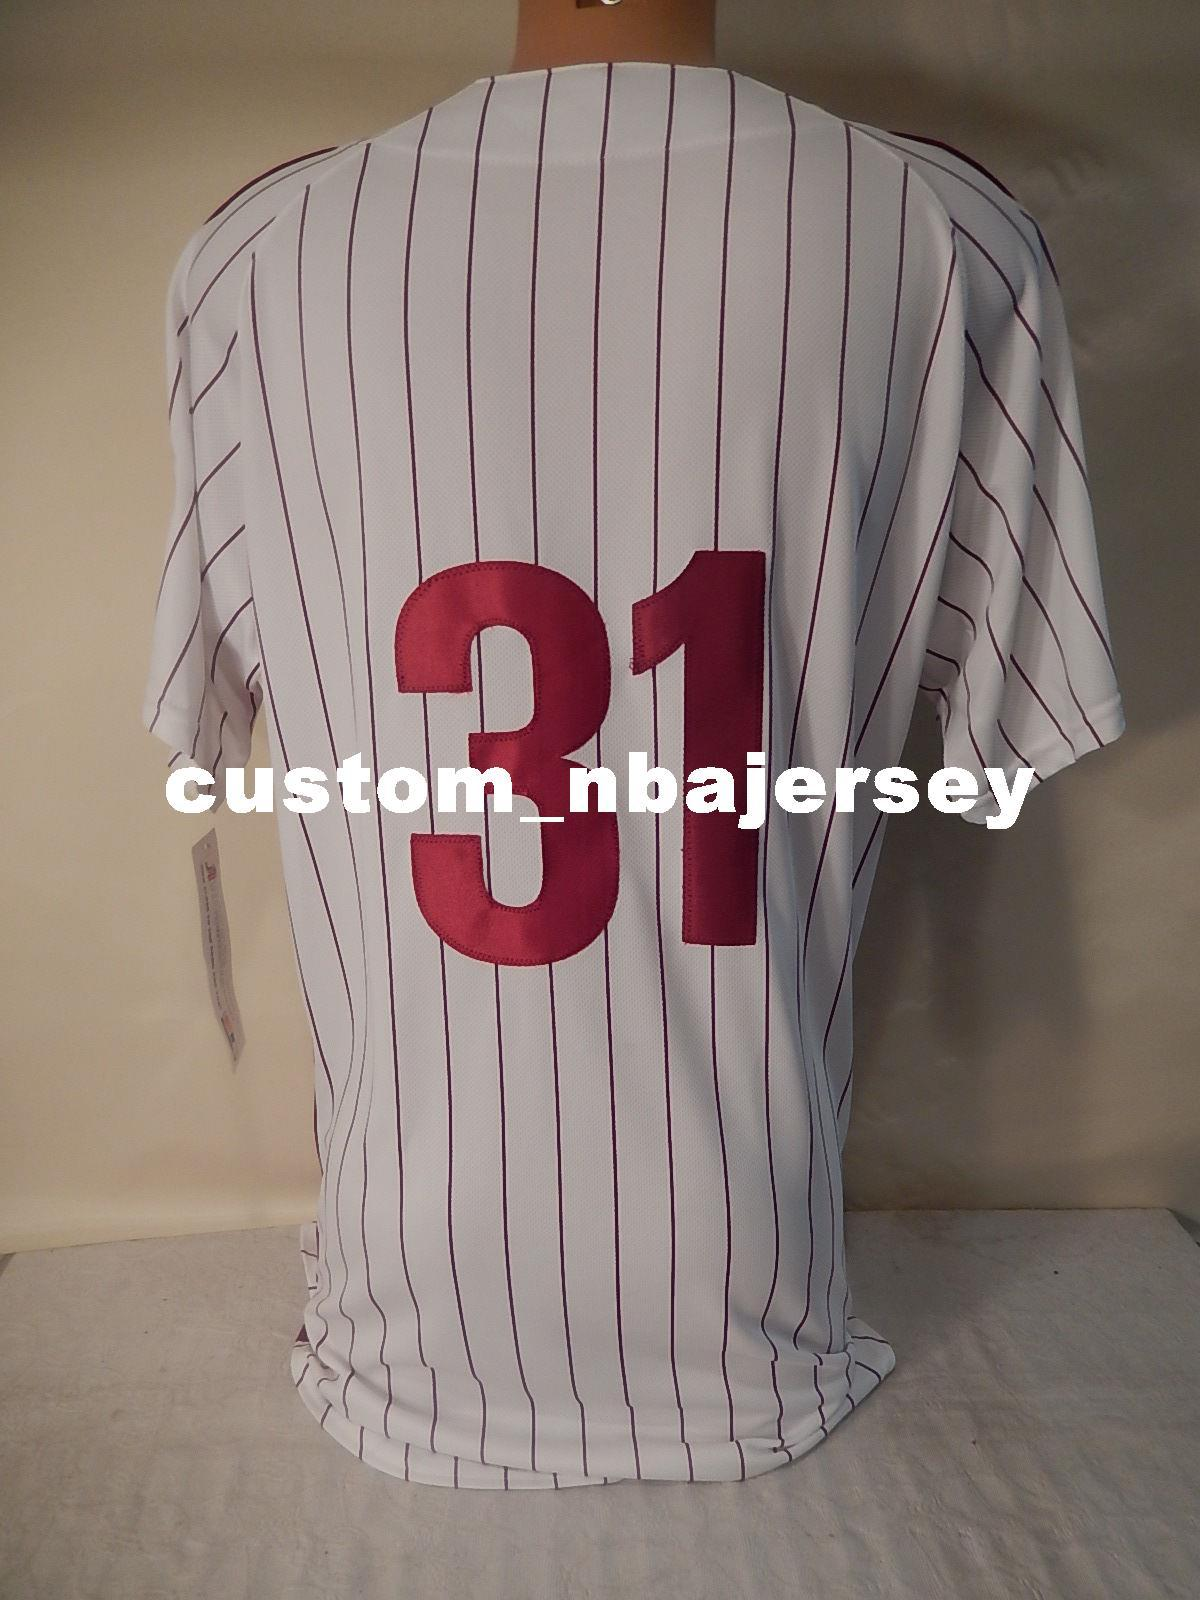 Cheap Custom GARRY MADDOX baseball jersey WHITE Stitched Retro Mens jerseys Customize any name number XS-5XL